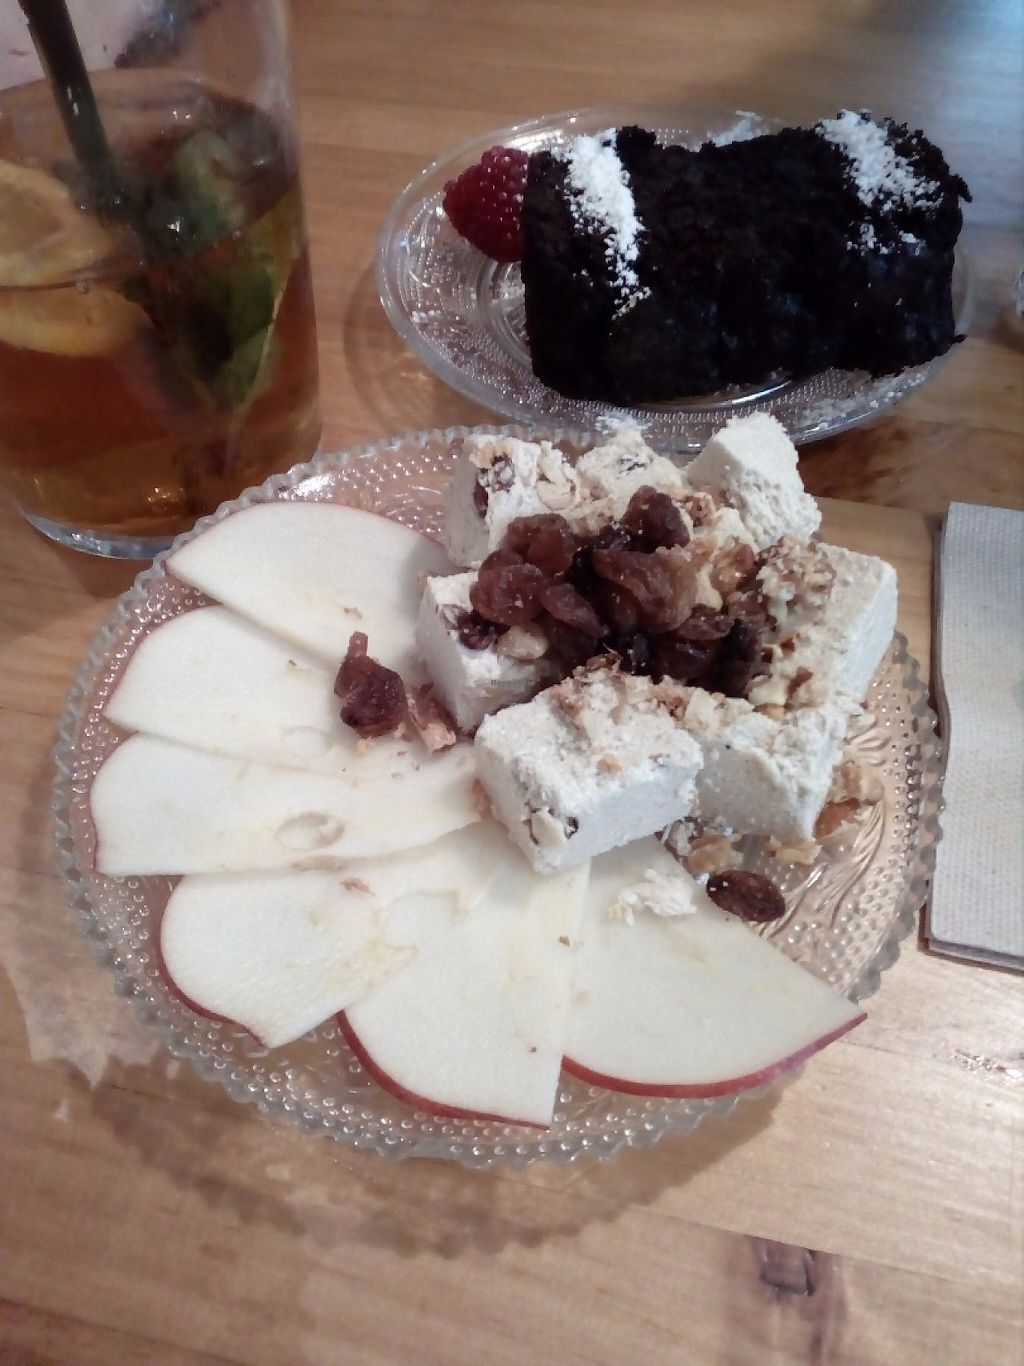 """Photo of La Hummuseria  by <a href=""""/members/profile/wyrd"""">wyrd</a> <br/>Torrone/nougat with apple slices <br/> May 4, 2017  - <a href='/contact/abuse/image/65872/255512'>Report</a>"""